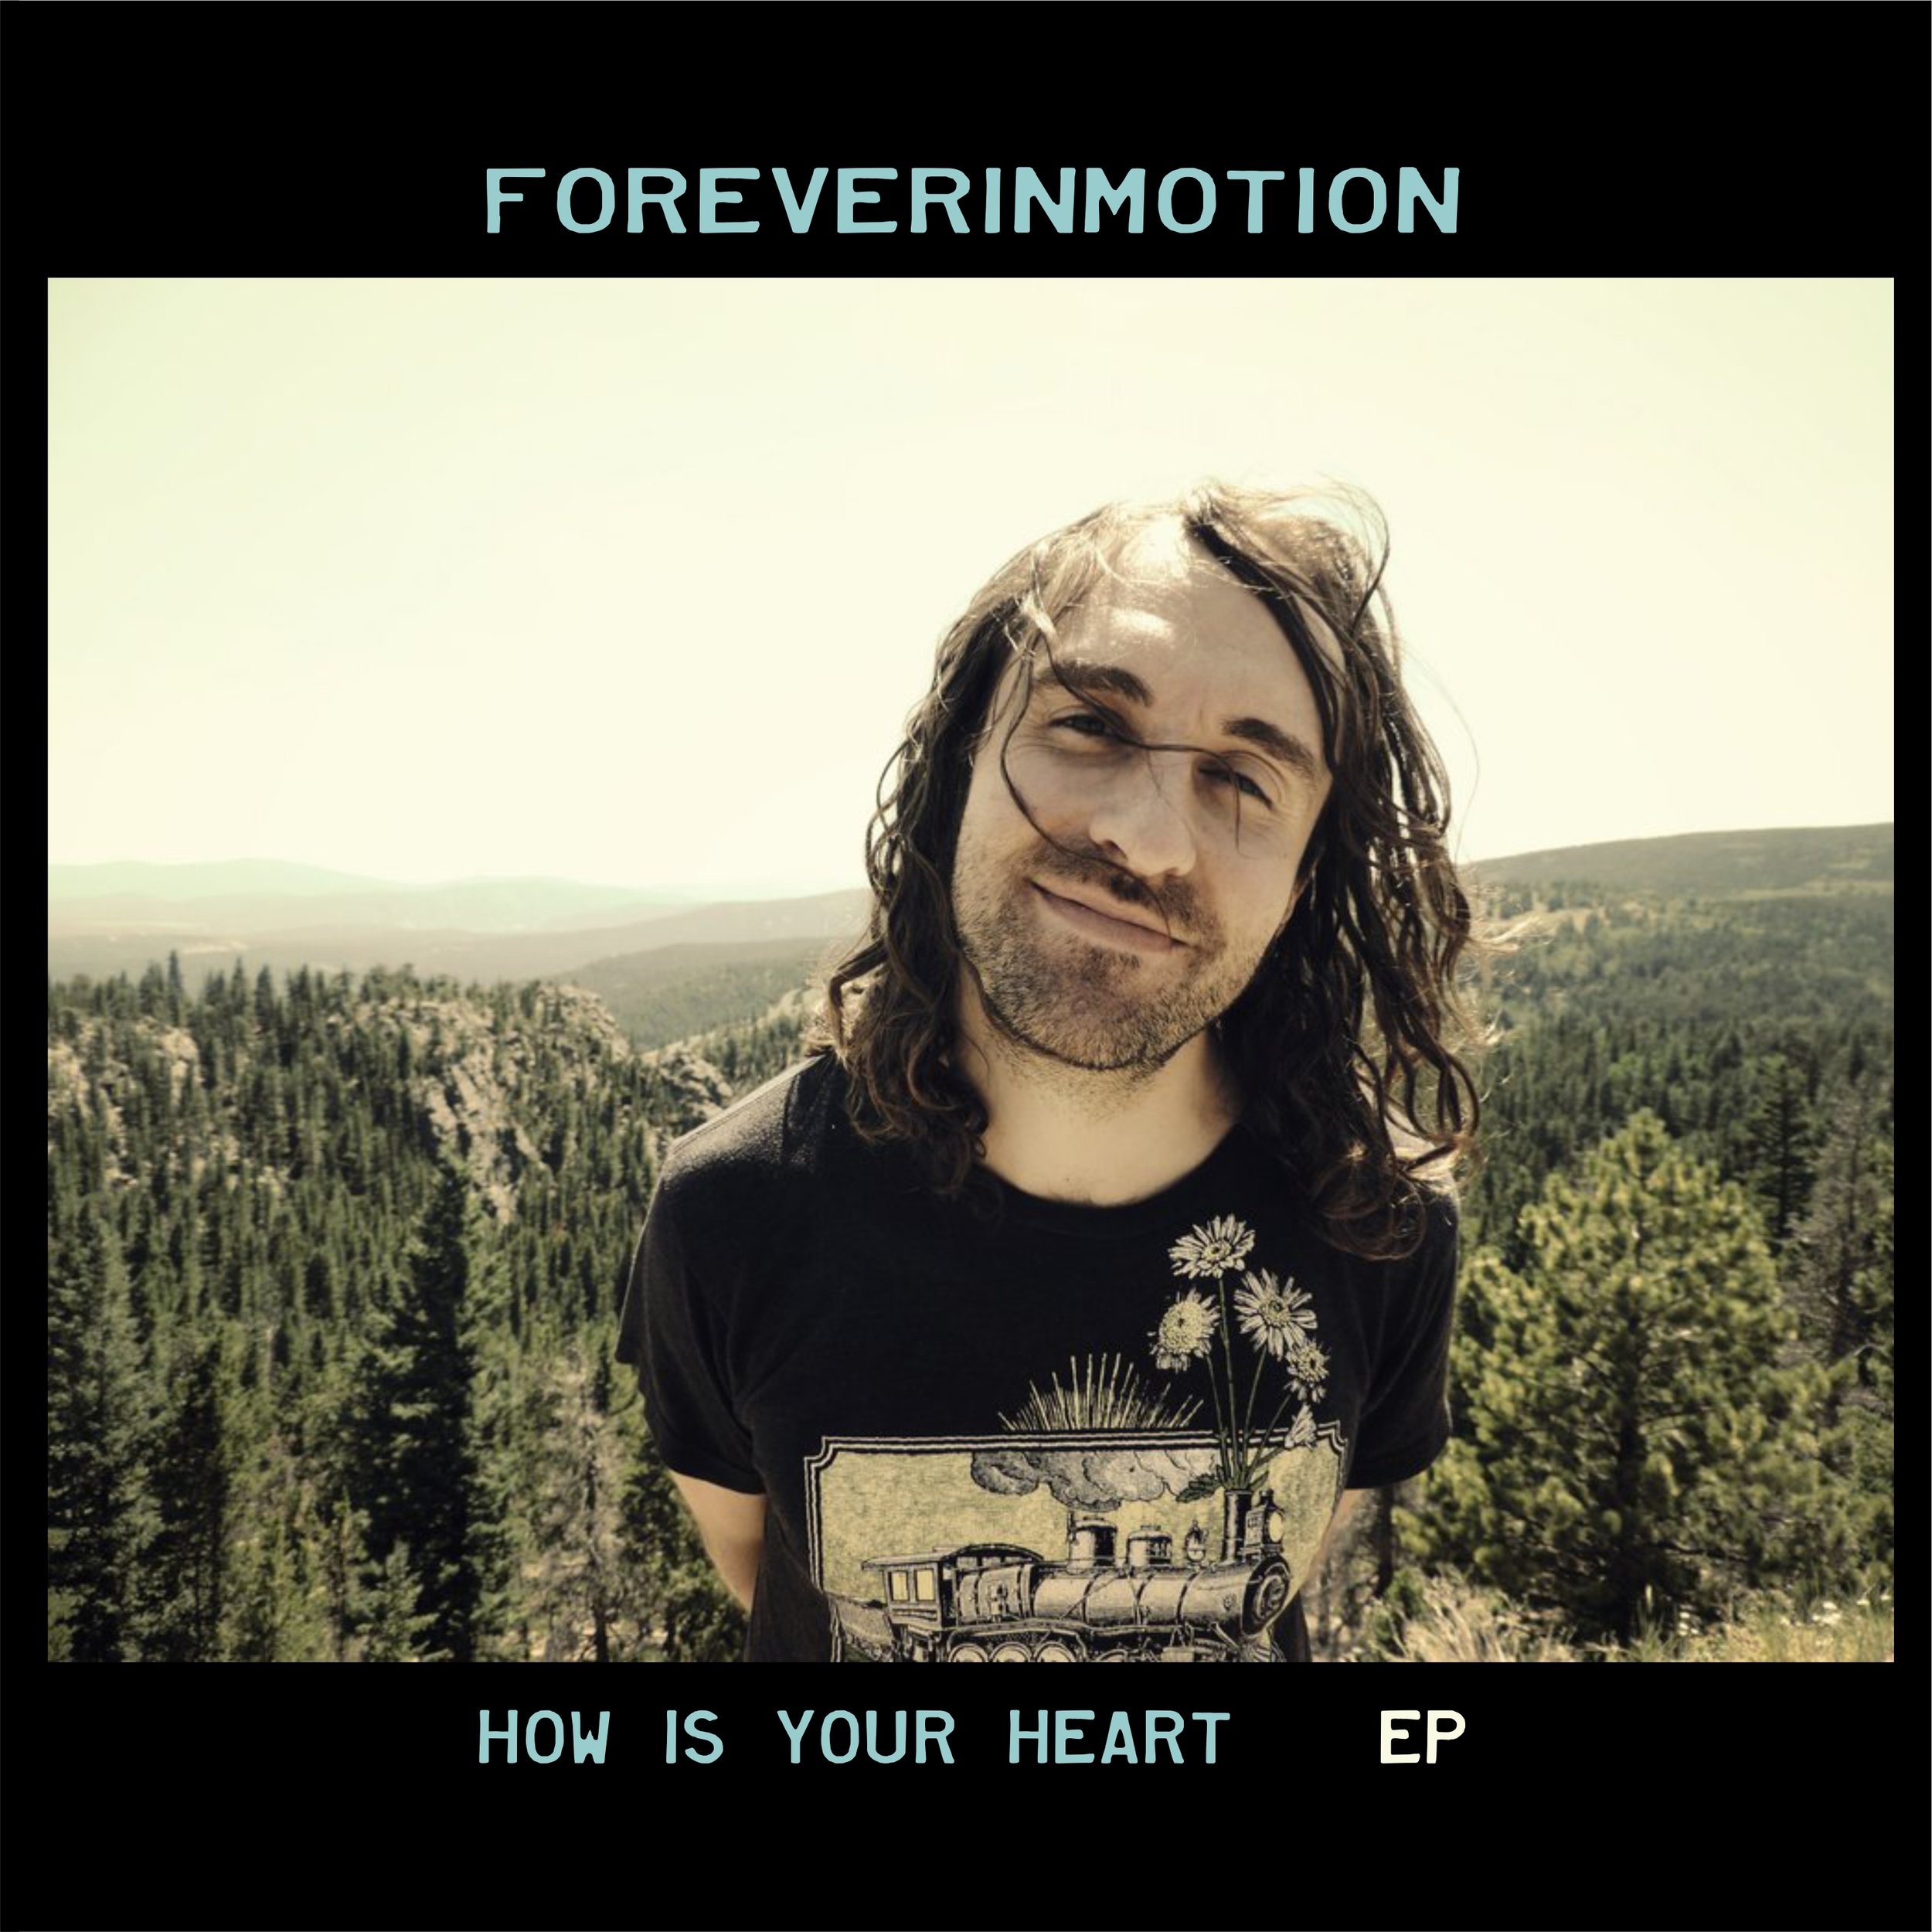 HOW IS YOUR HEART EP.jpg